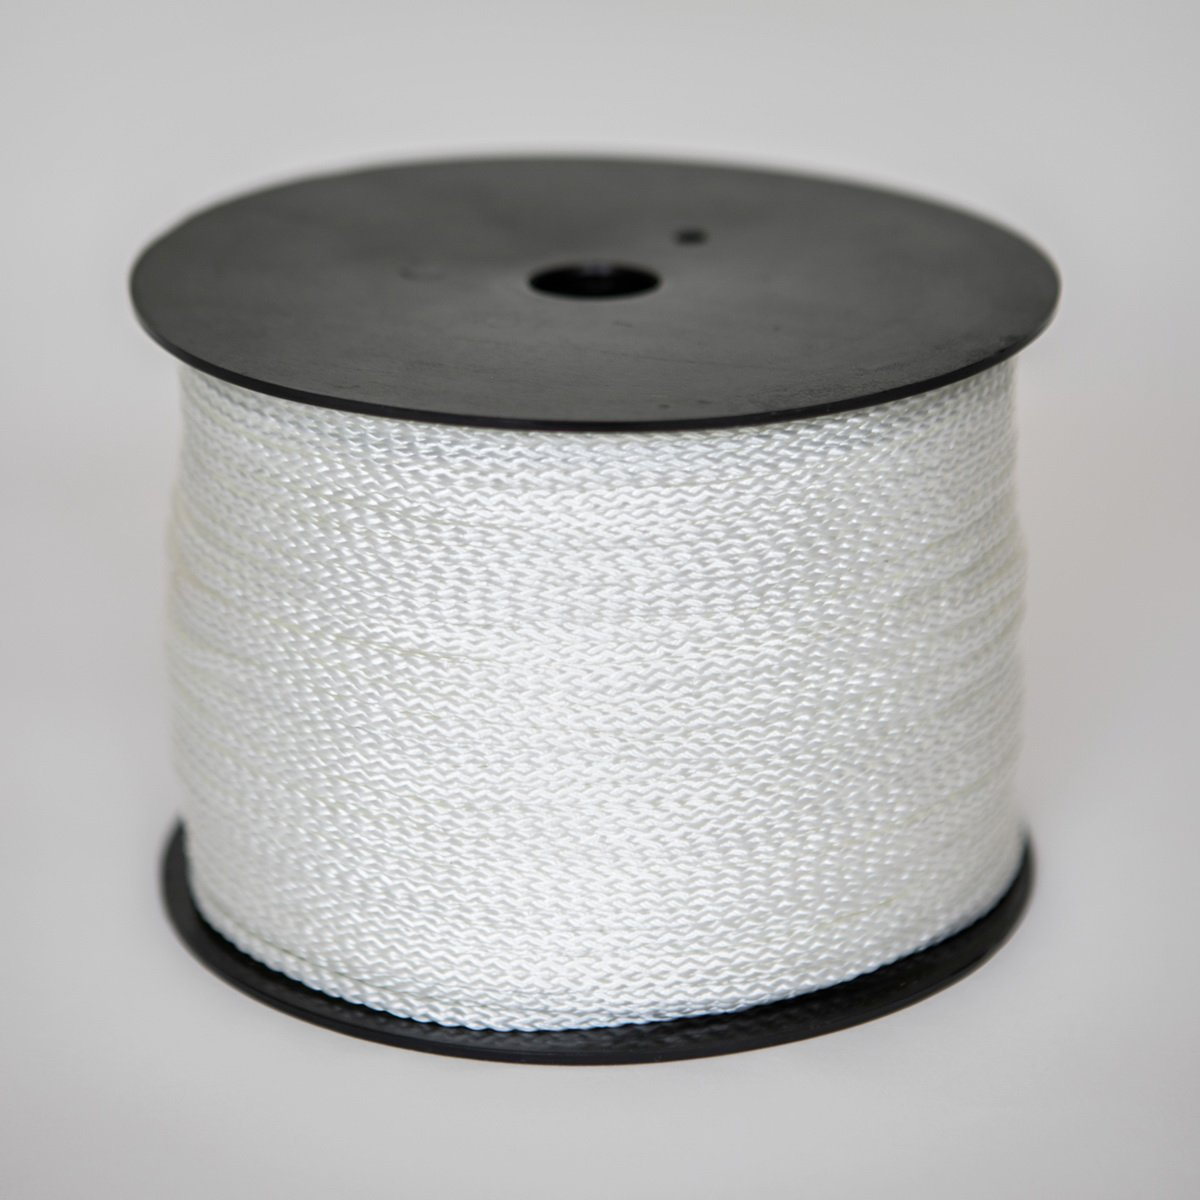 1/8 inch x 1000 Feet Premium Low Stretch Polyester Cord (#4) | Synthetic Rope | Commercial Grade Industrial Braided Rope by AKFD GOODS